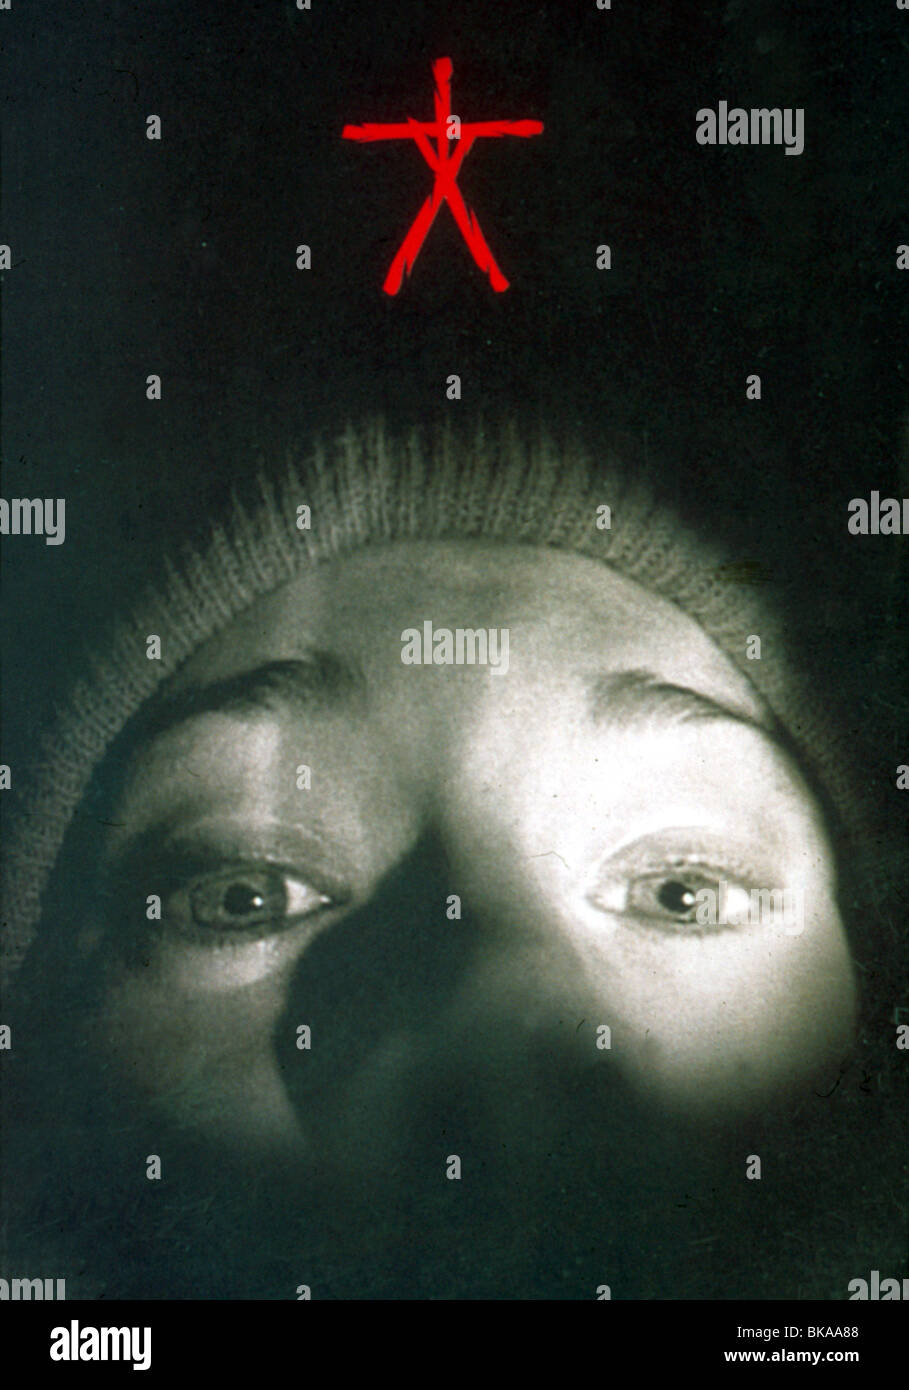 BLAIR WITCH PROJECT (1999) PLAKAT BWP 061 Stockbild